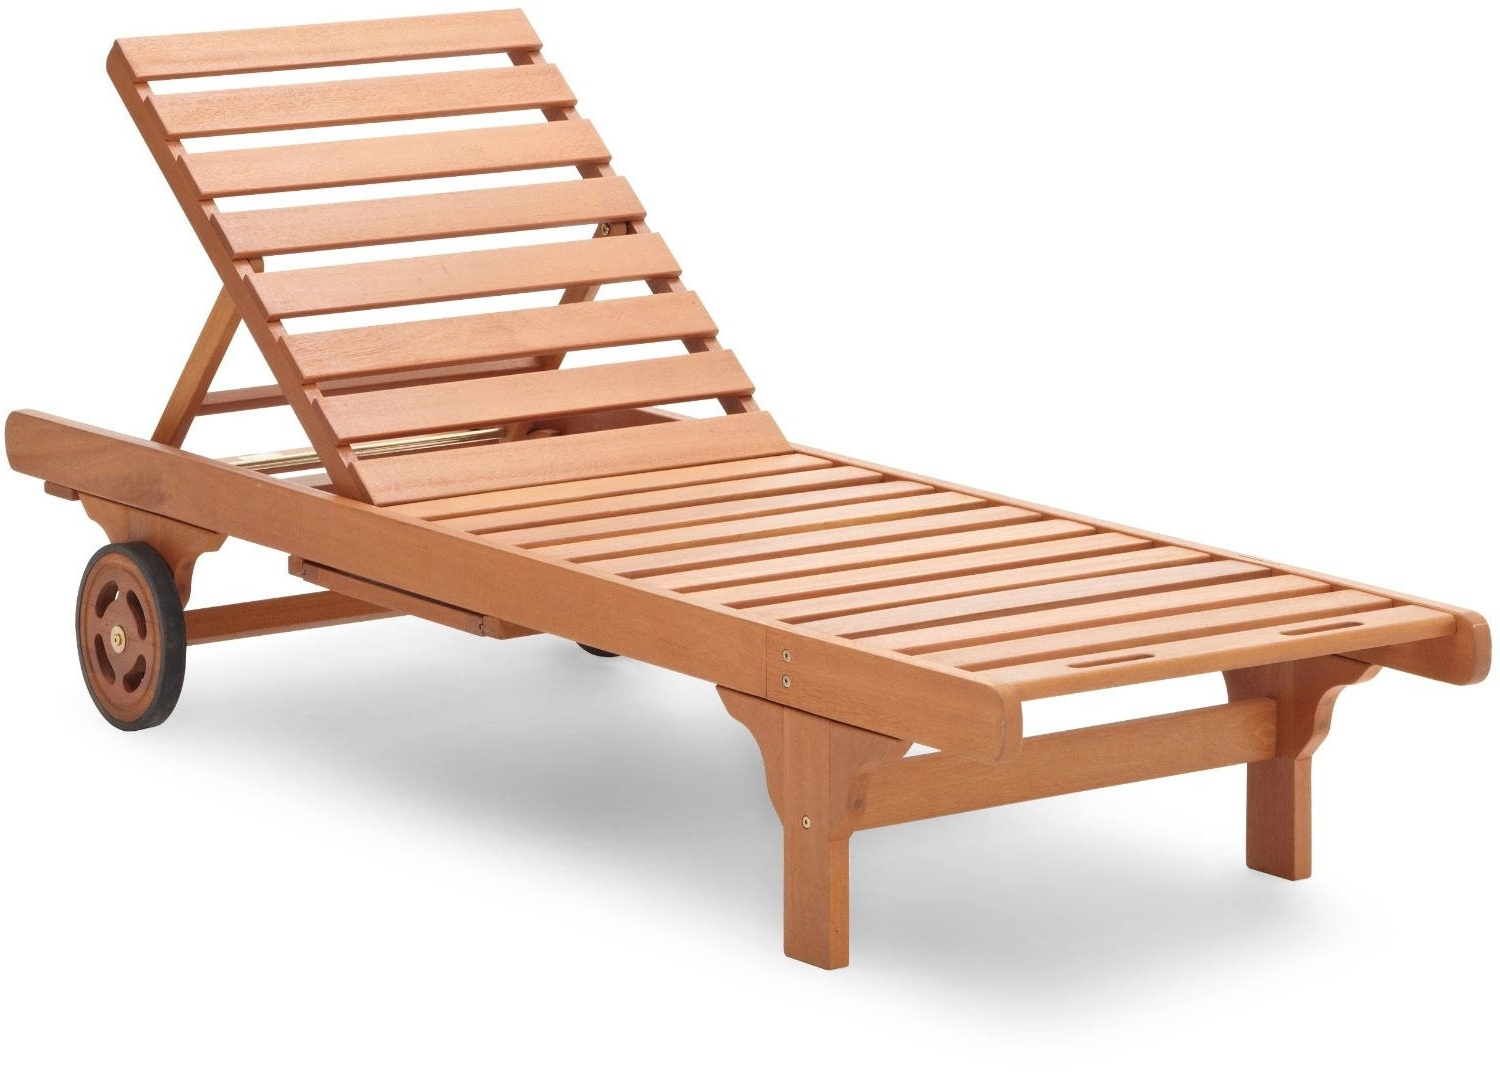 Wood Chaise Lounge Chairs With Popular Wood Chaise Lounge Chairs • Lounge Chairs Ideas (View 2 of 15)